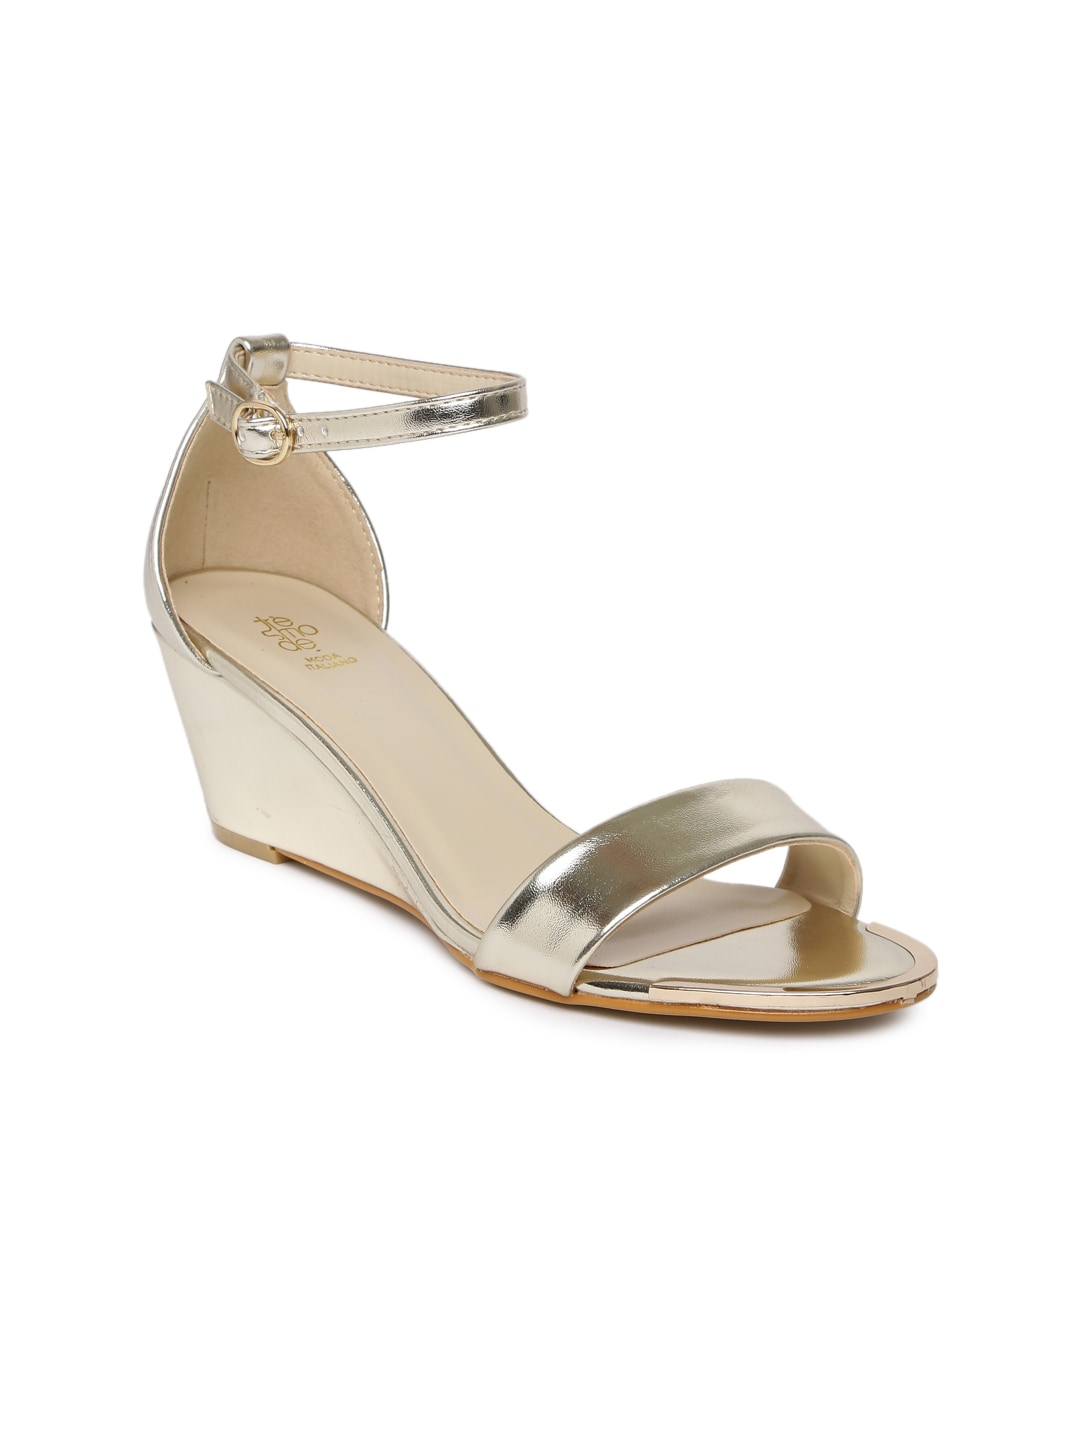 Tresmode Golden Wedges For Women Get Stylish Shoes For